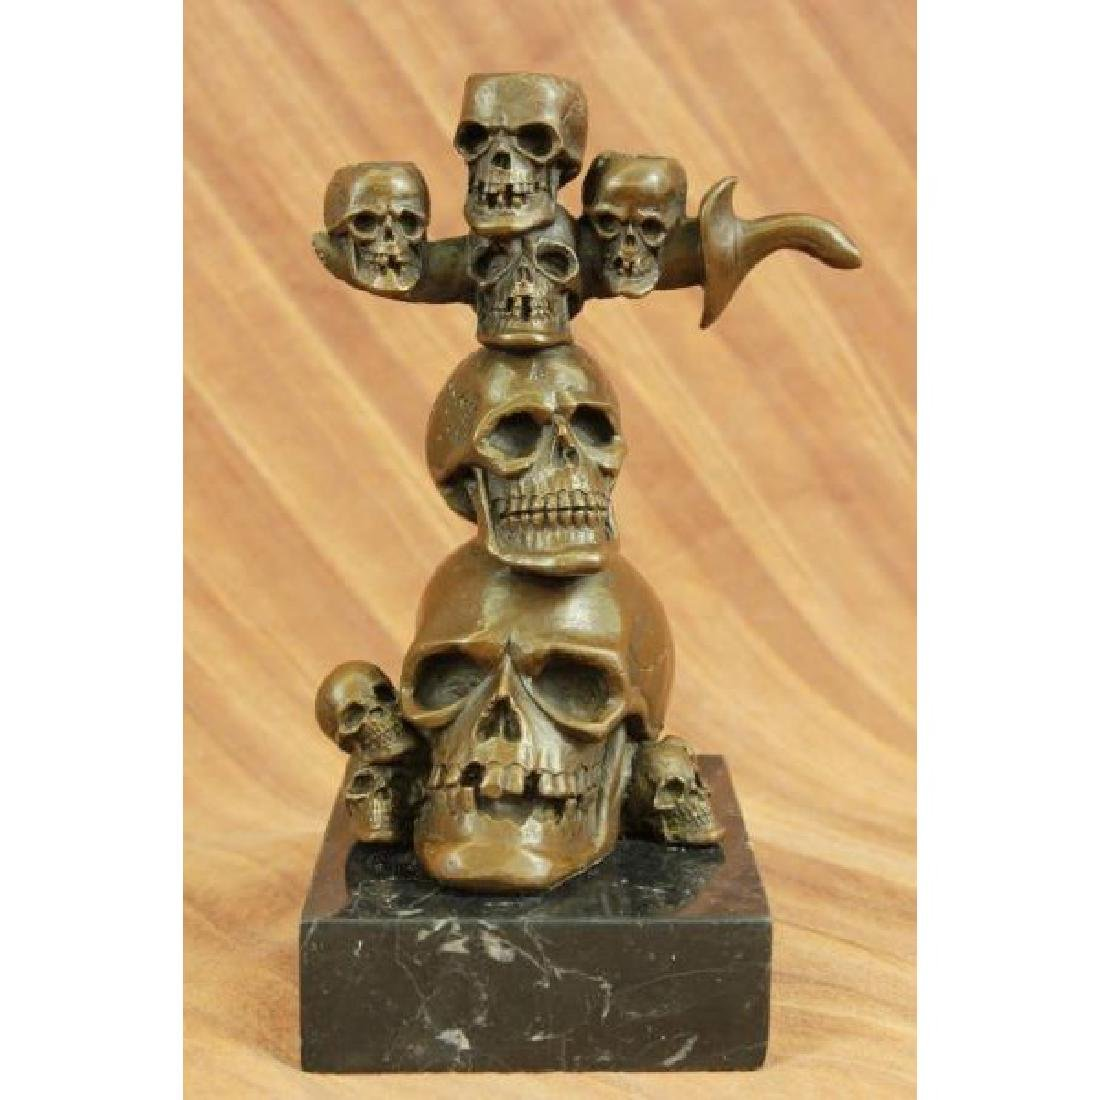 Skull Skulls Sword Home Office Decor Bronze Sculpture